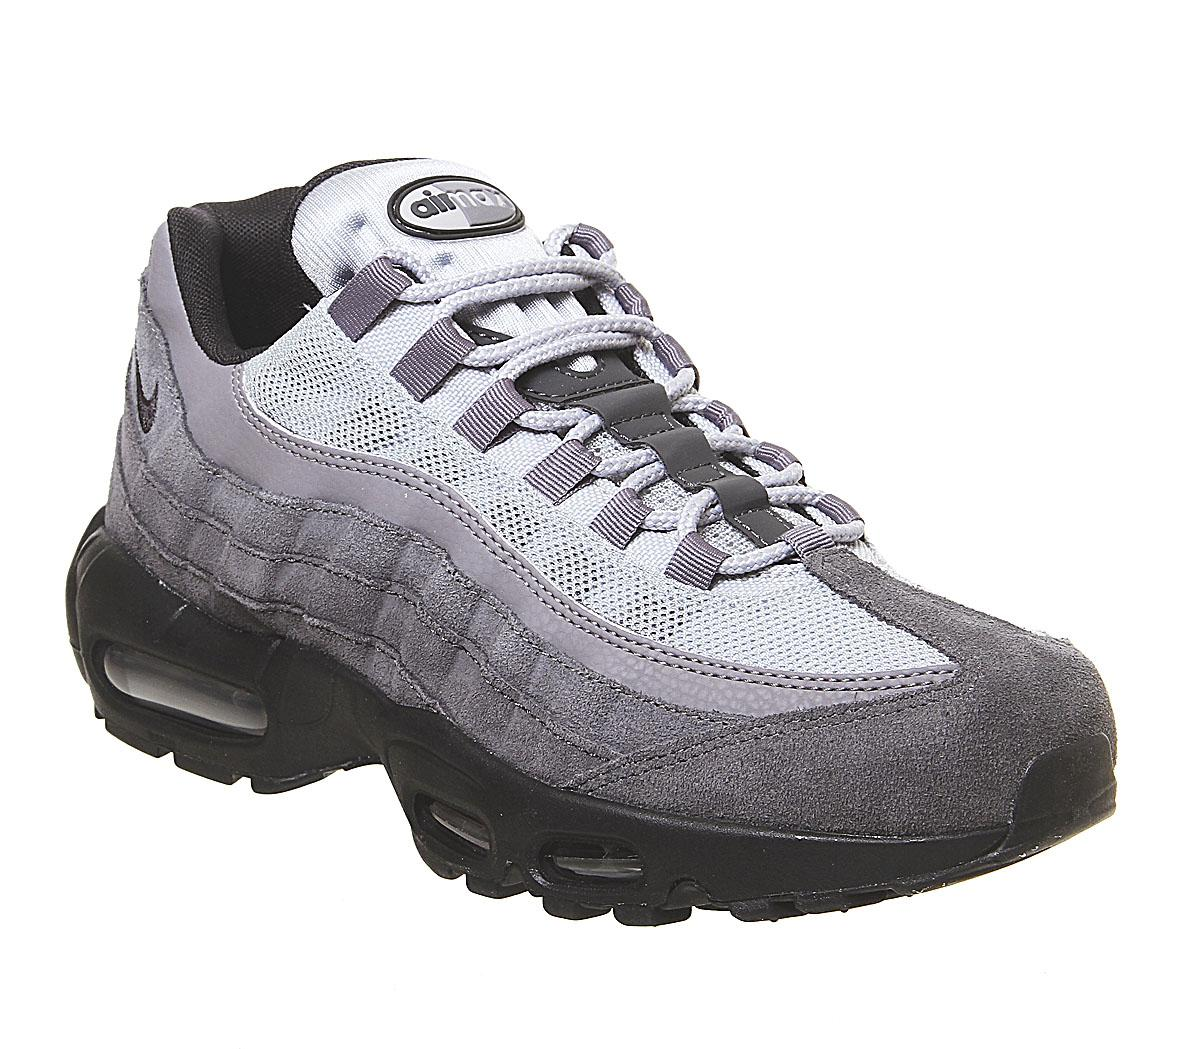 Nike Air Max 95 Trainers Anthracite